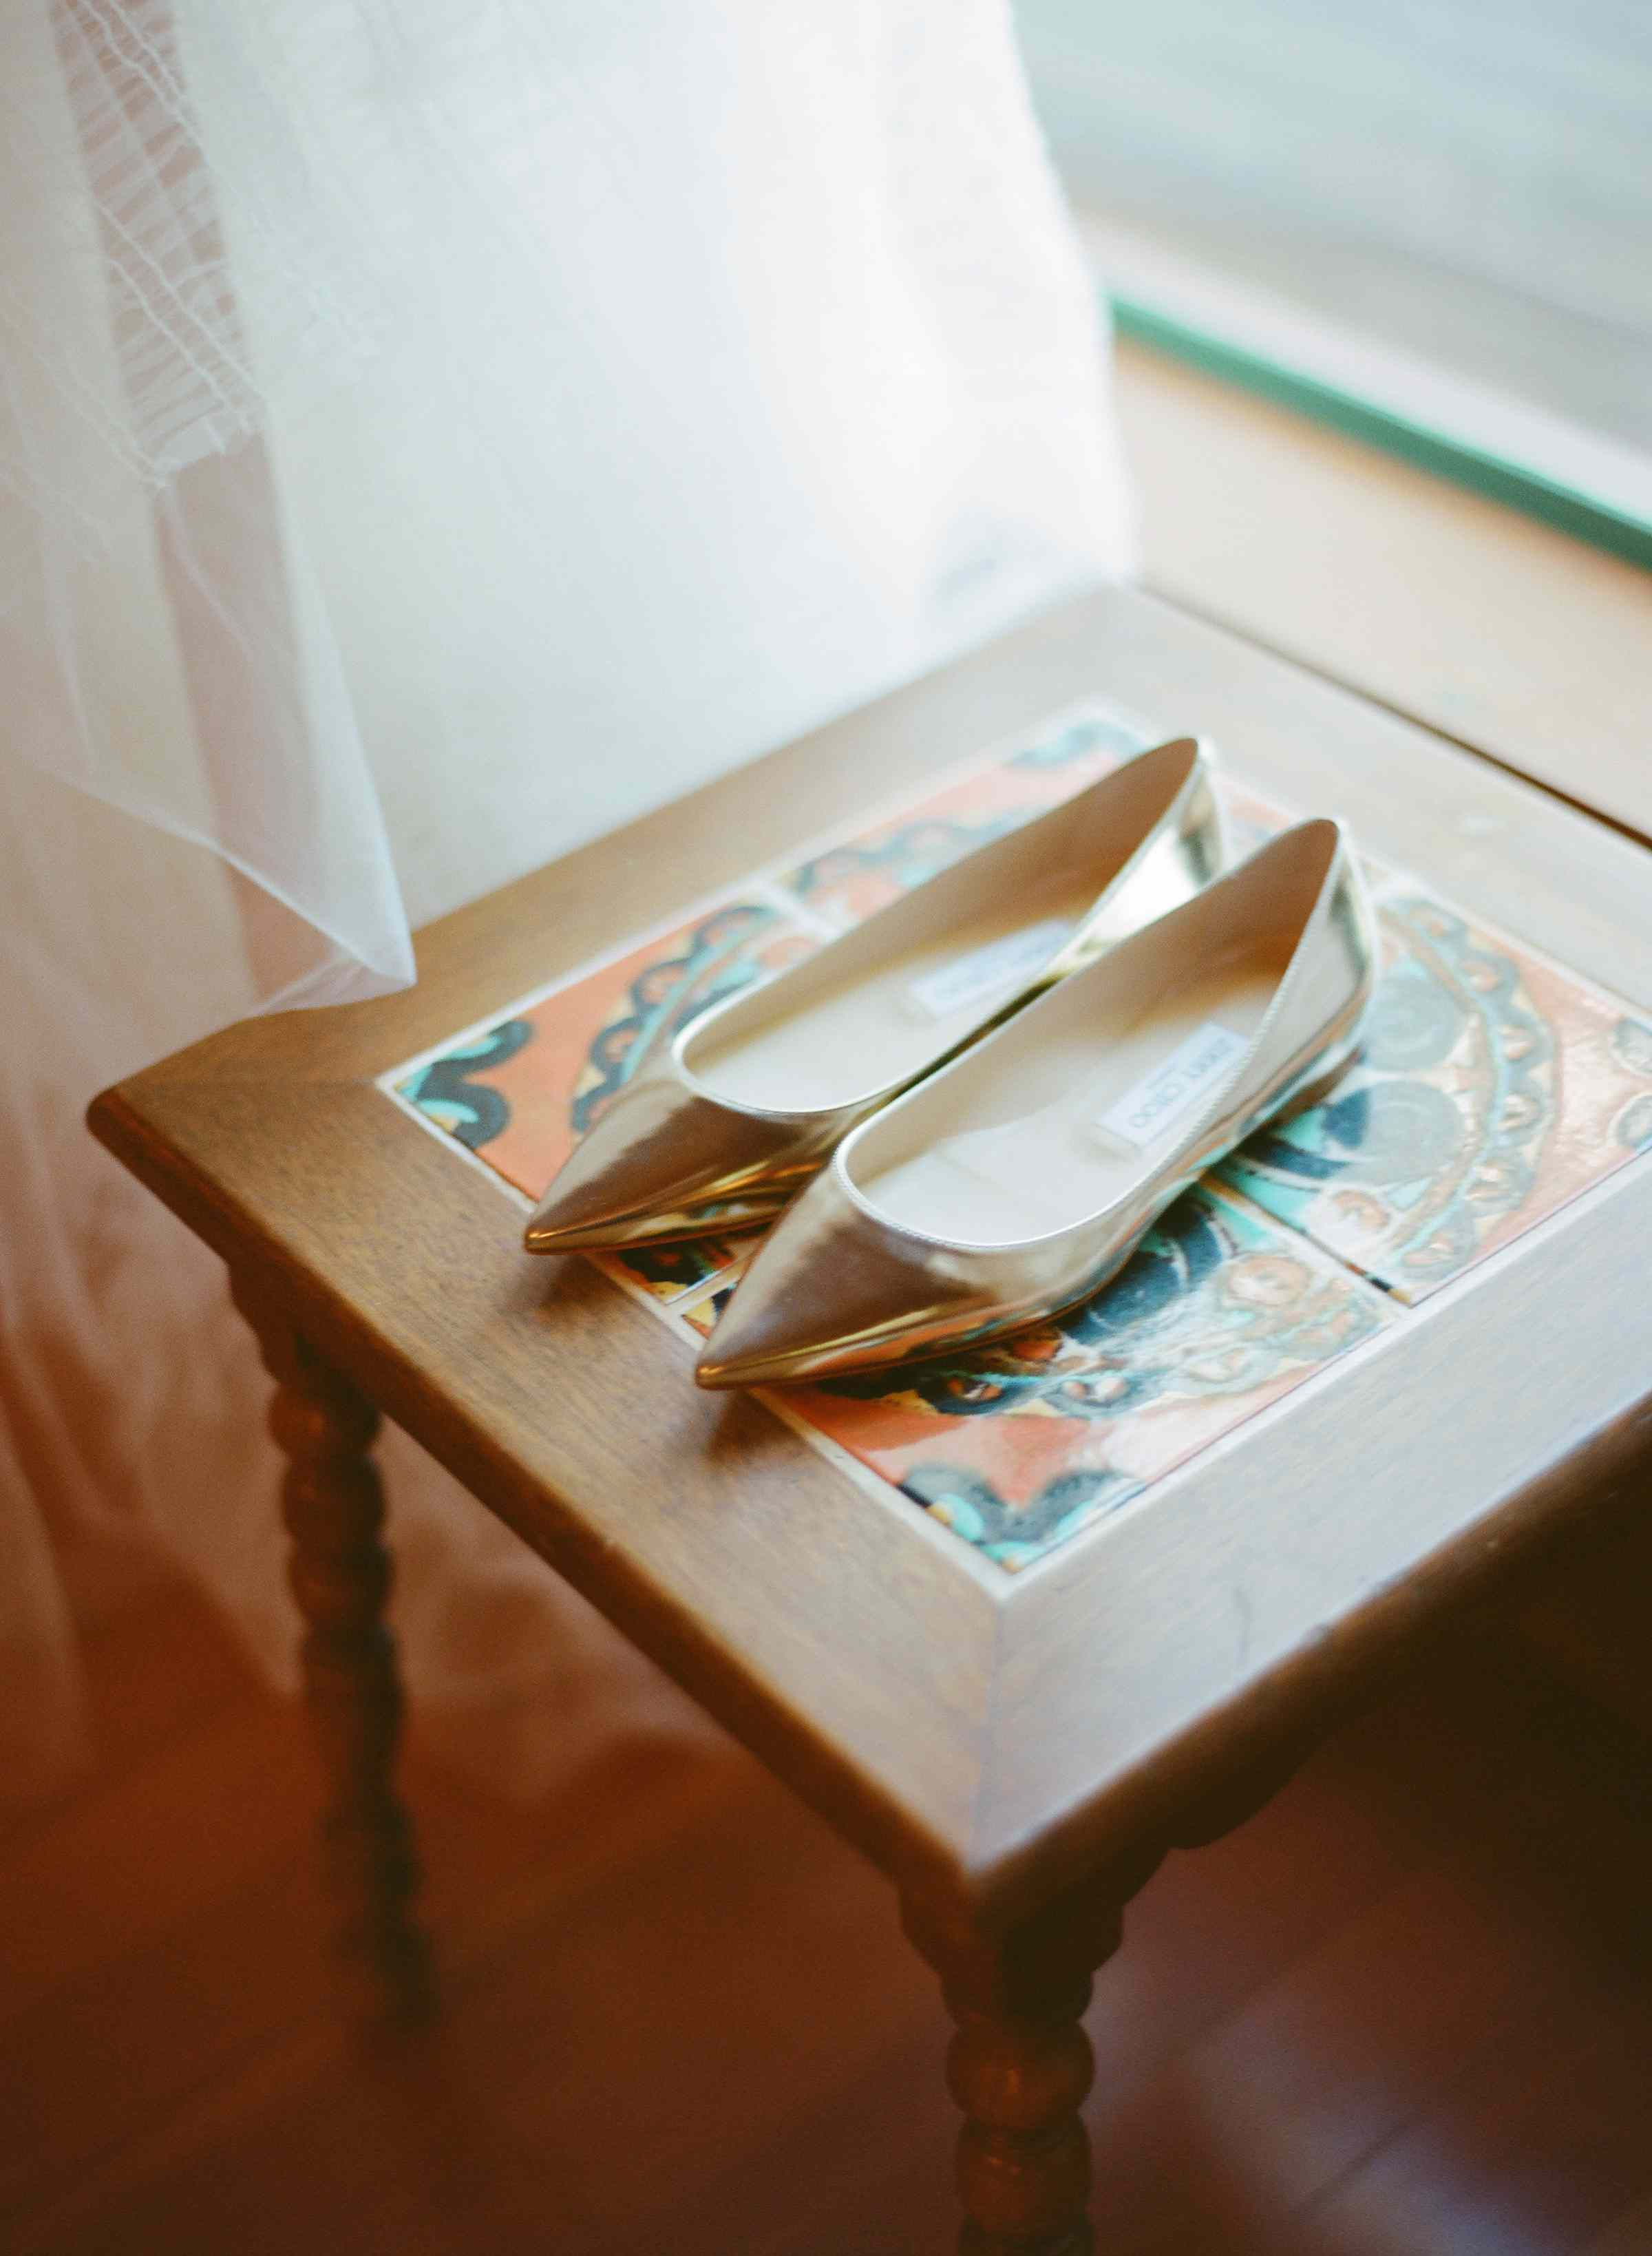 Pointed metallic flats sitting on table.